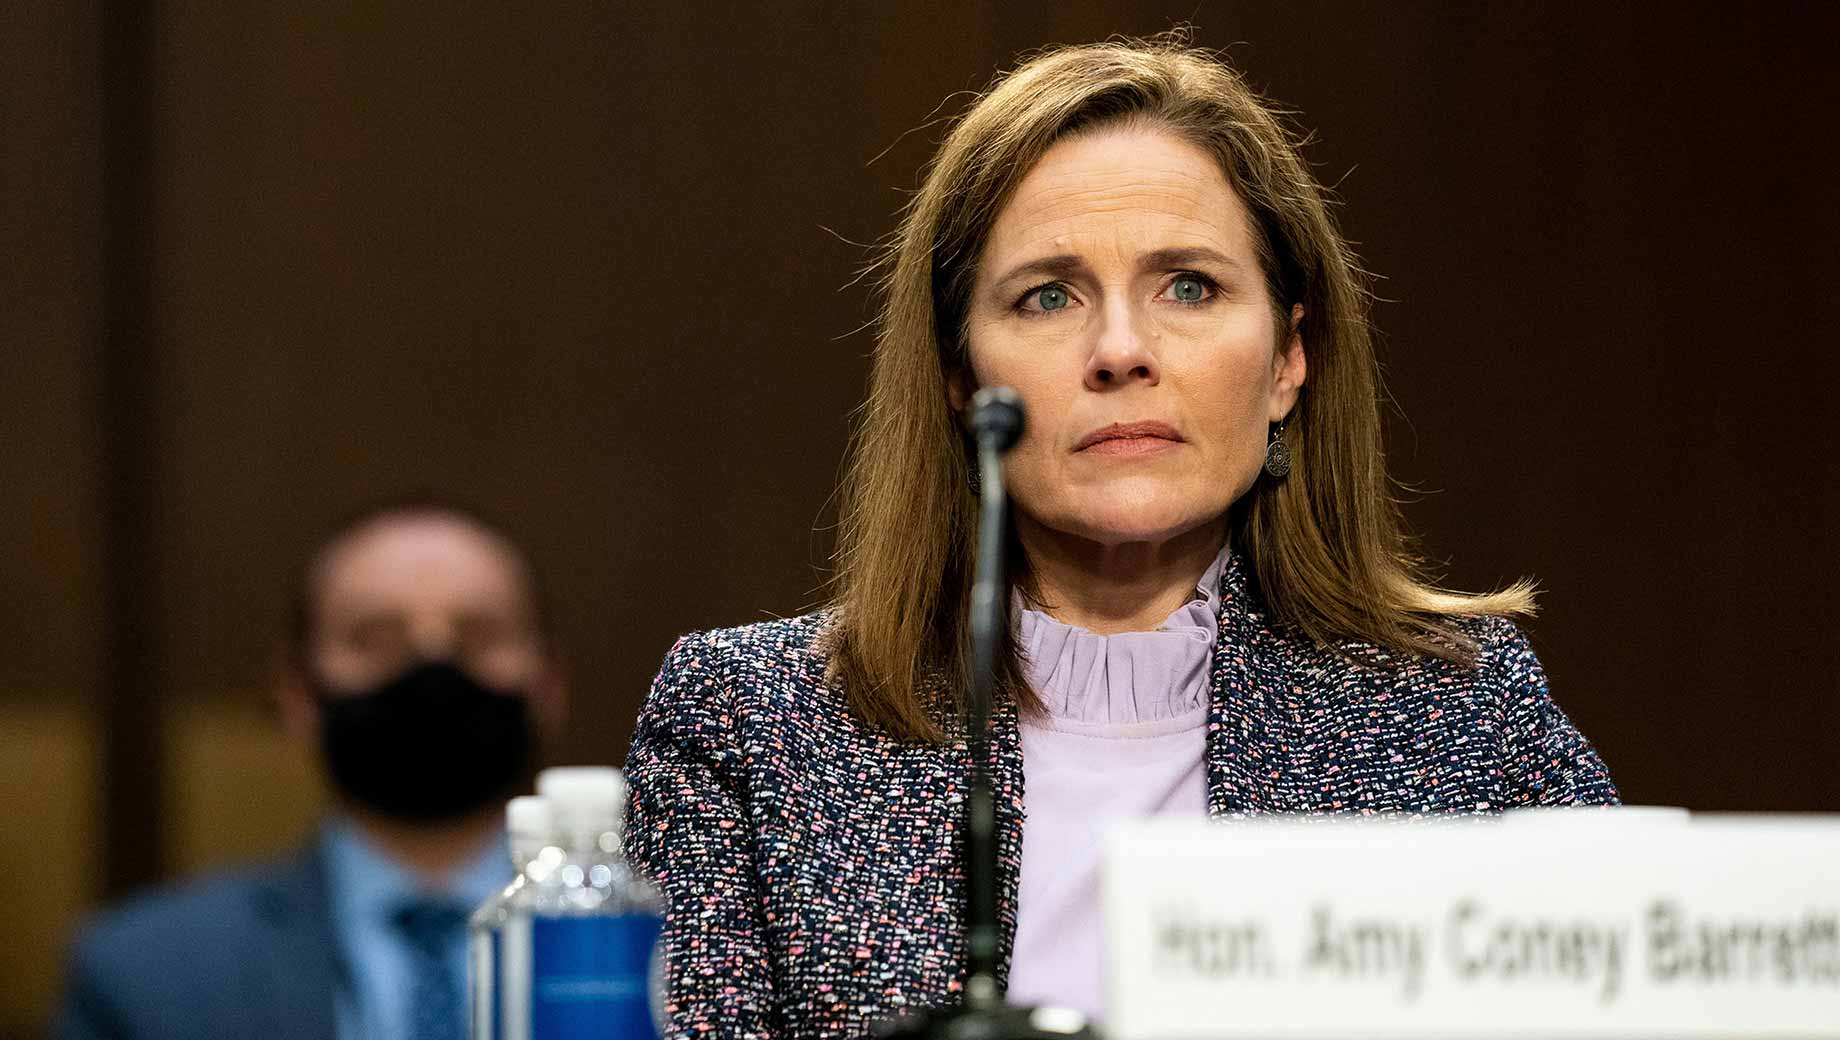 GALLUP – 51% in U.S. Want Amy Coney Barrett Seated on Supreme Court